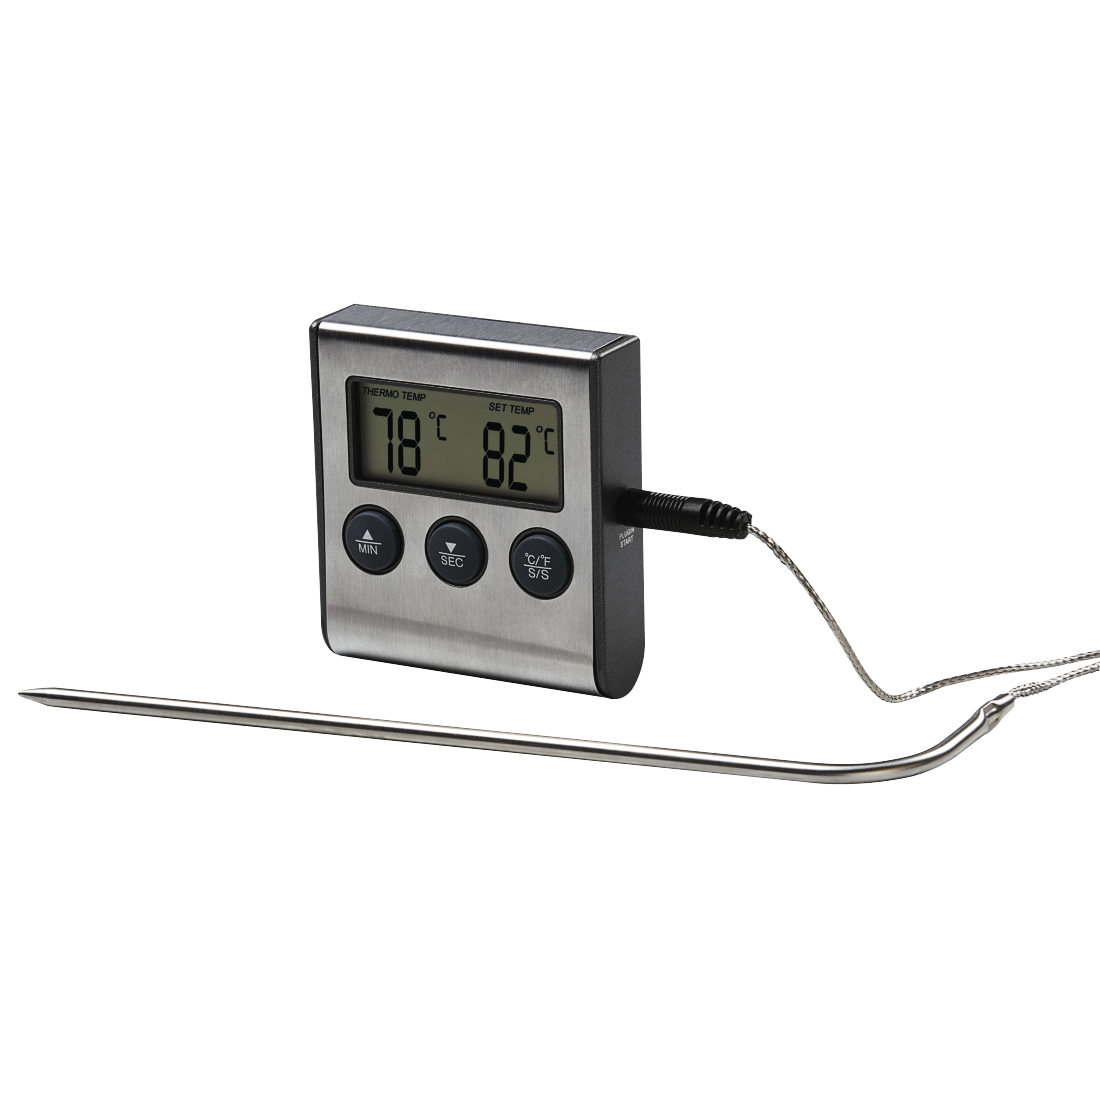 abx High-Res Image - Xavax, Digital Meat Thermometer with Timer, cable sensor